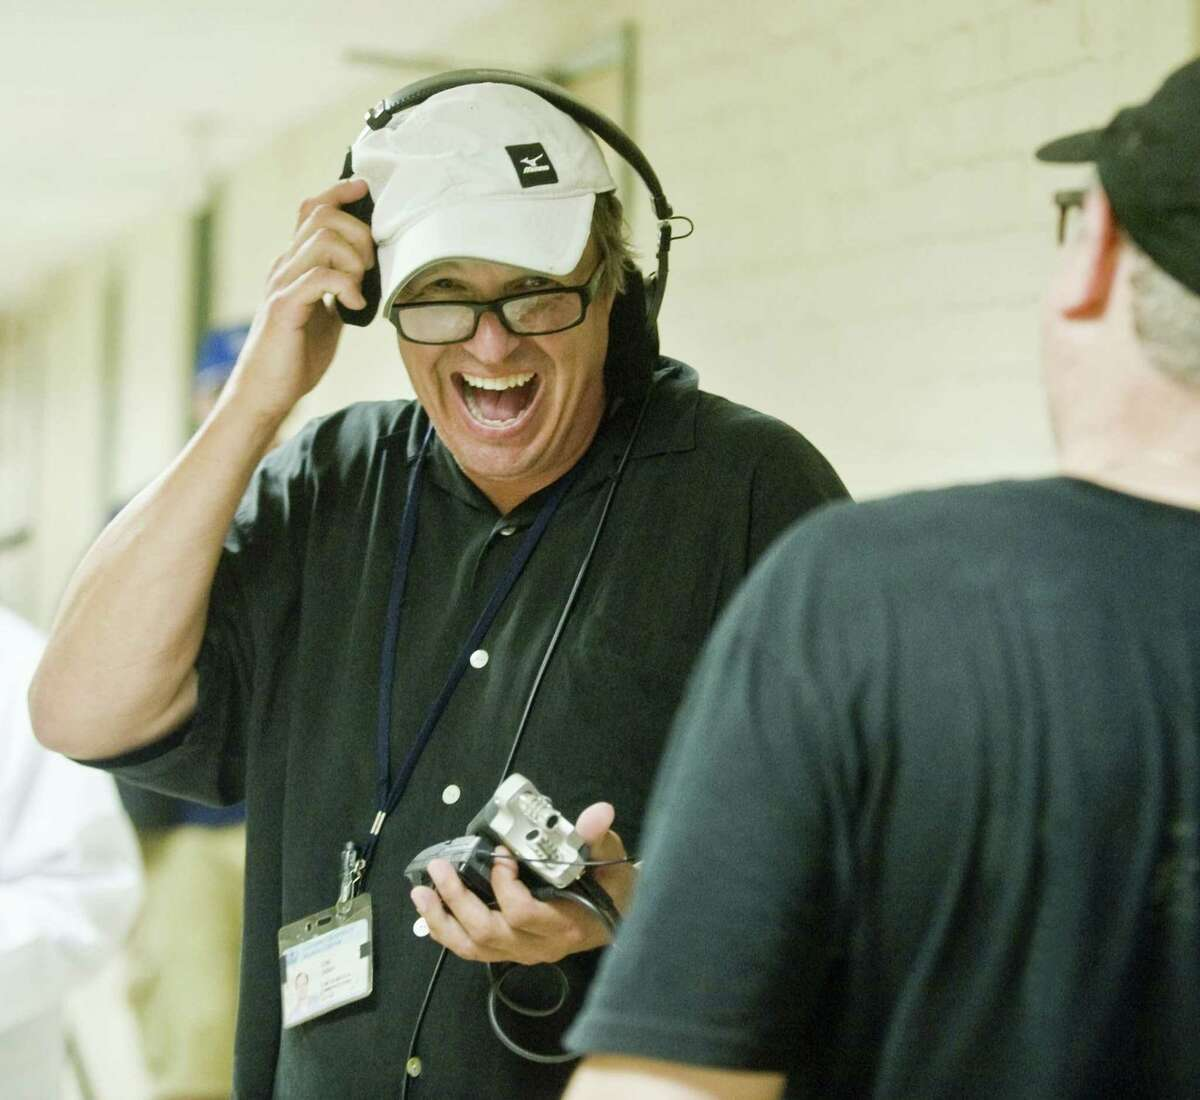 Producer Craig Dobson, of Darien, shares a laugh on the set while shooting a short film in White Hall at Western Connecticut State University in Danbury on Aug. 13.